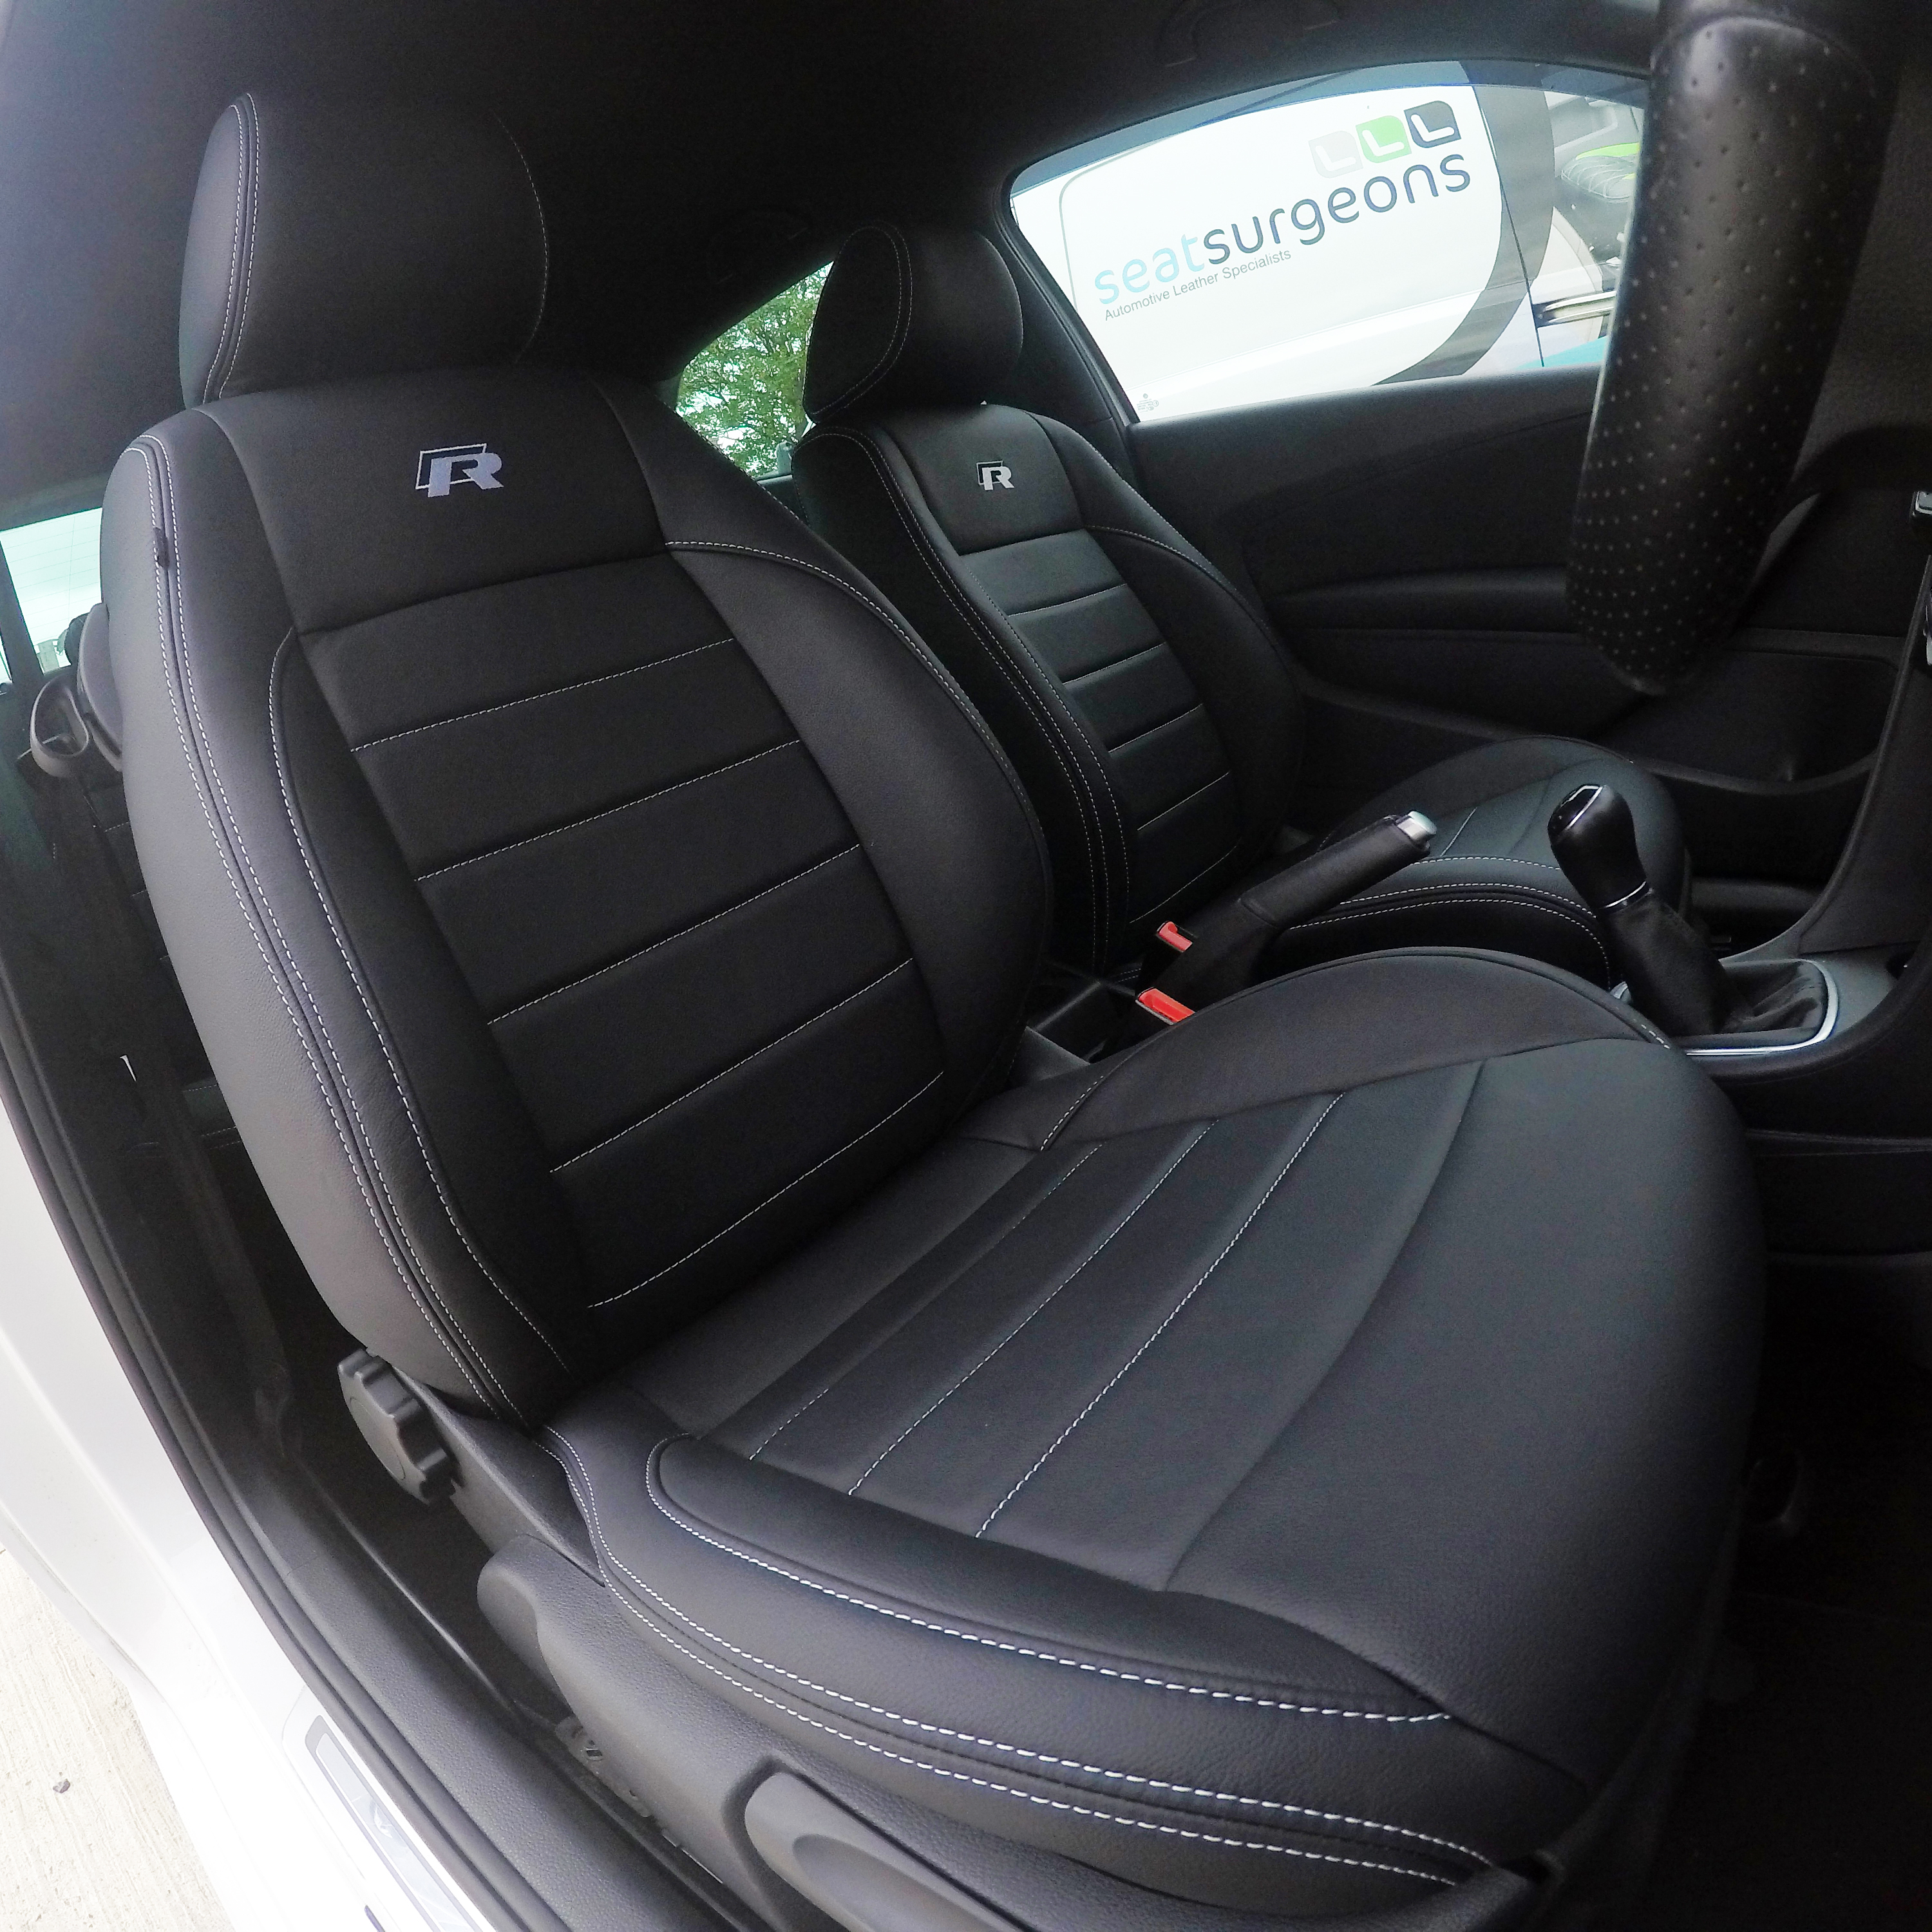 ce45c8aca7 VW Polo - Seat Surgeons